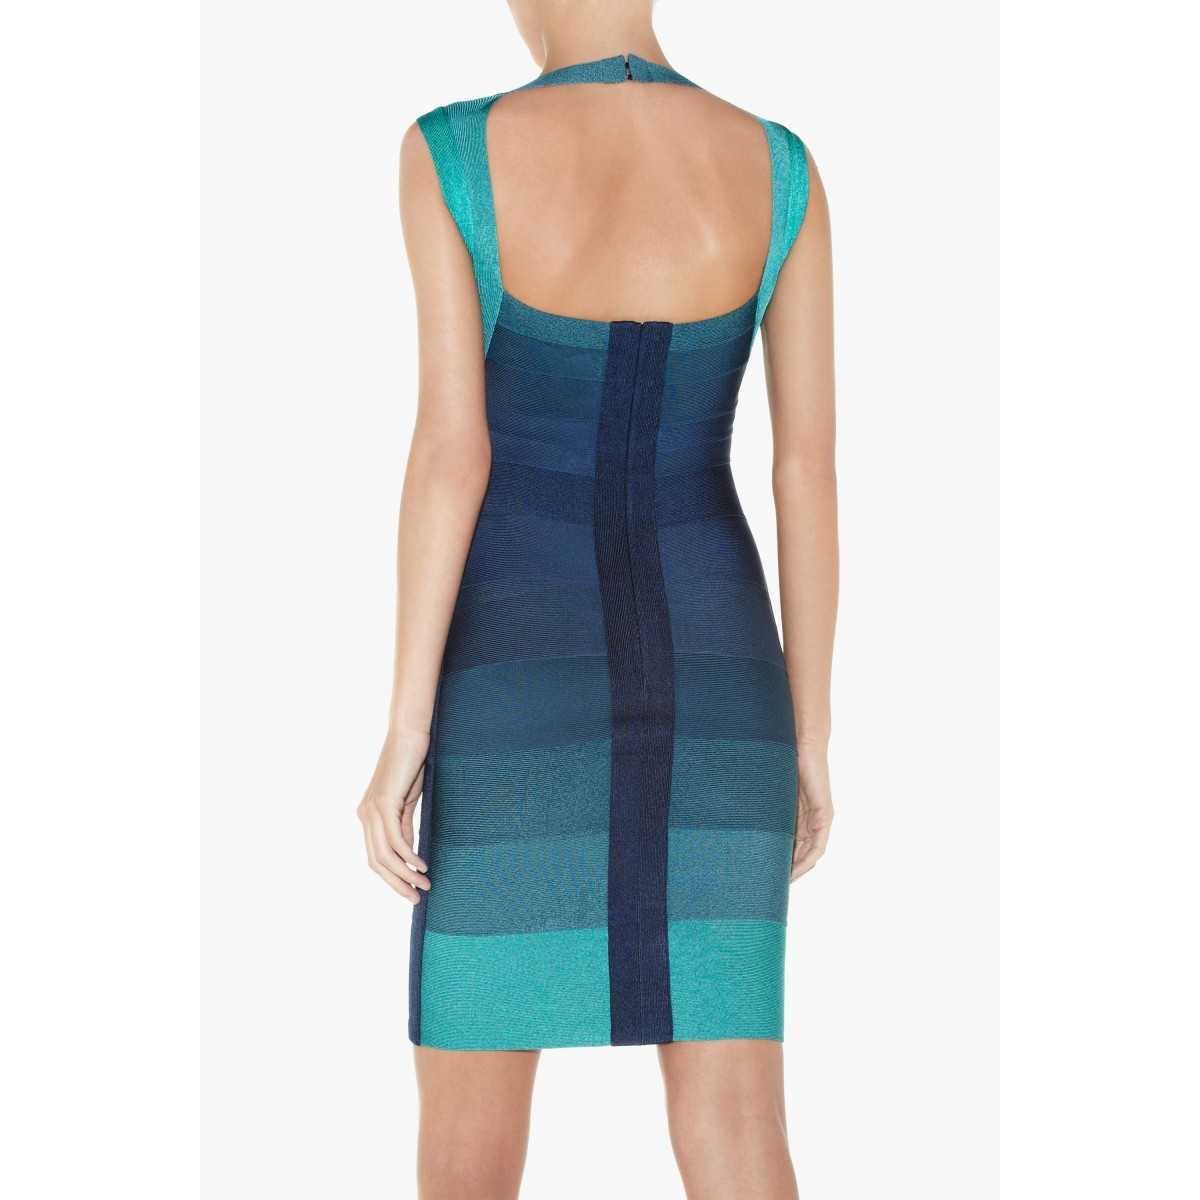 Herve Leger Amee Ombre Bandage Dress